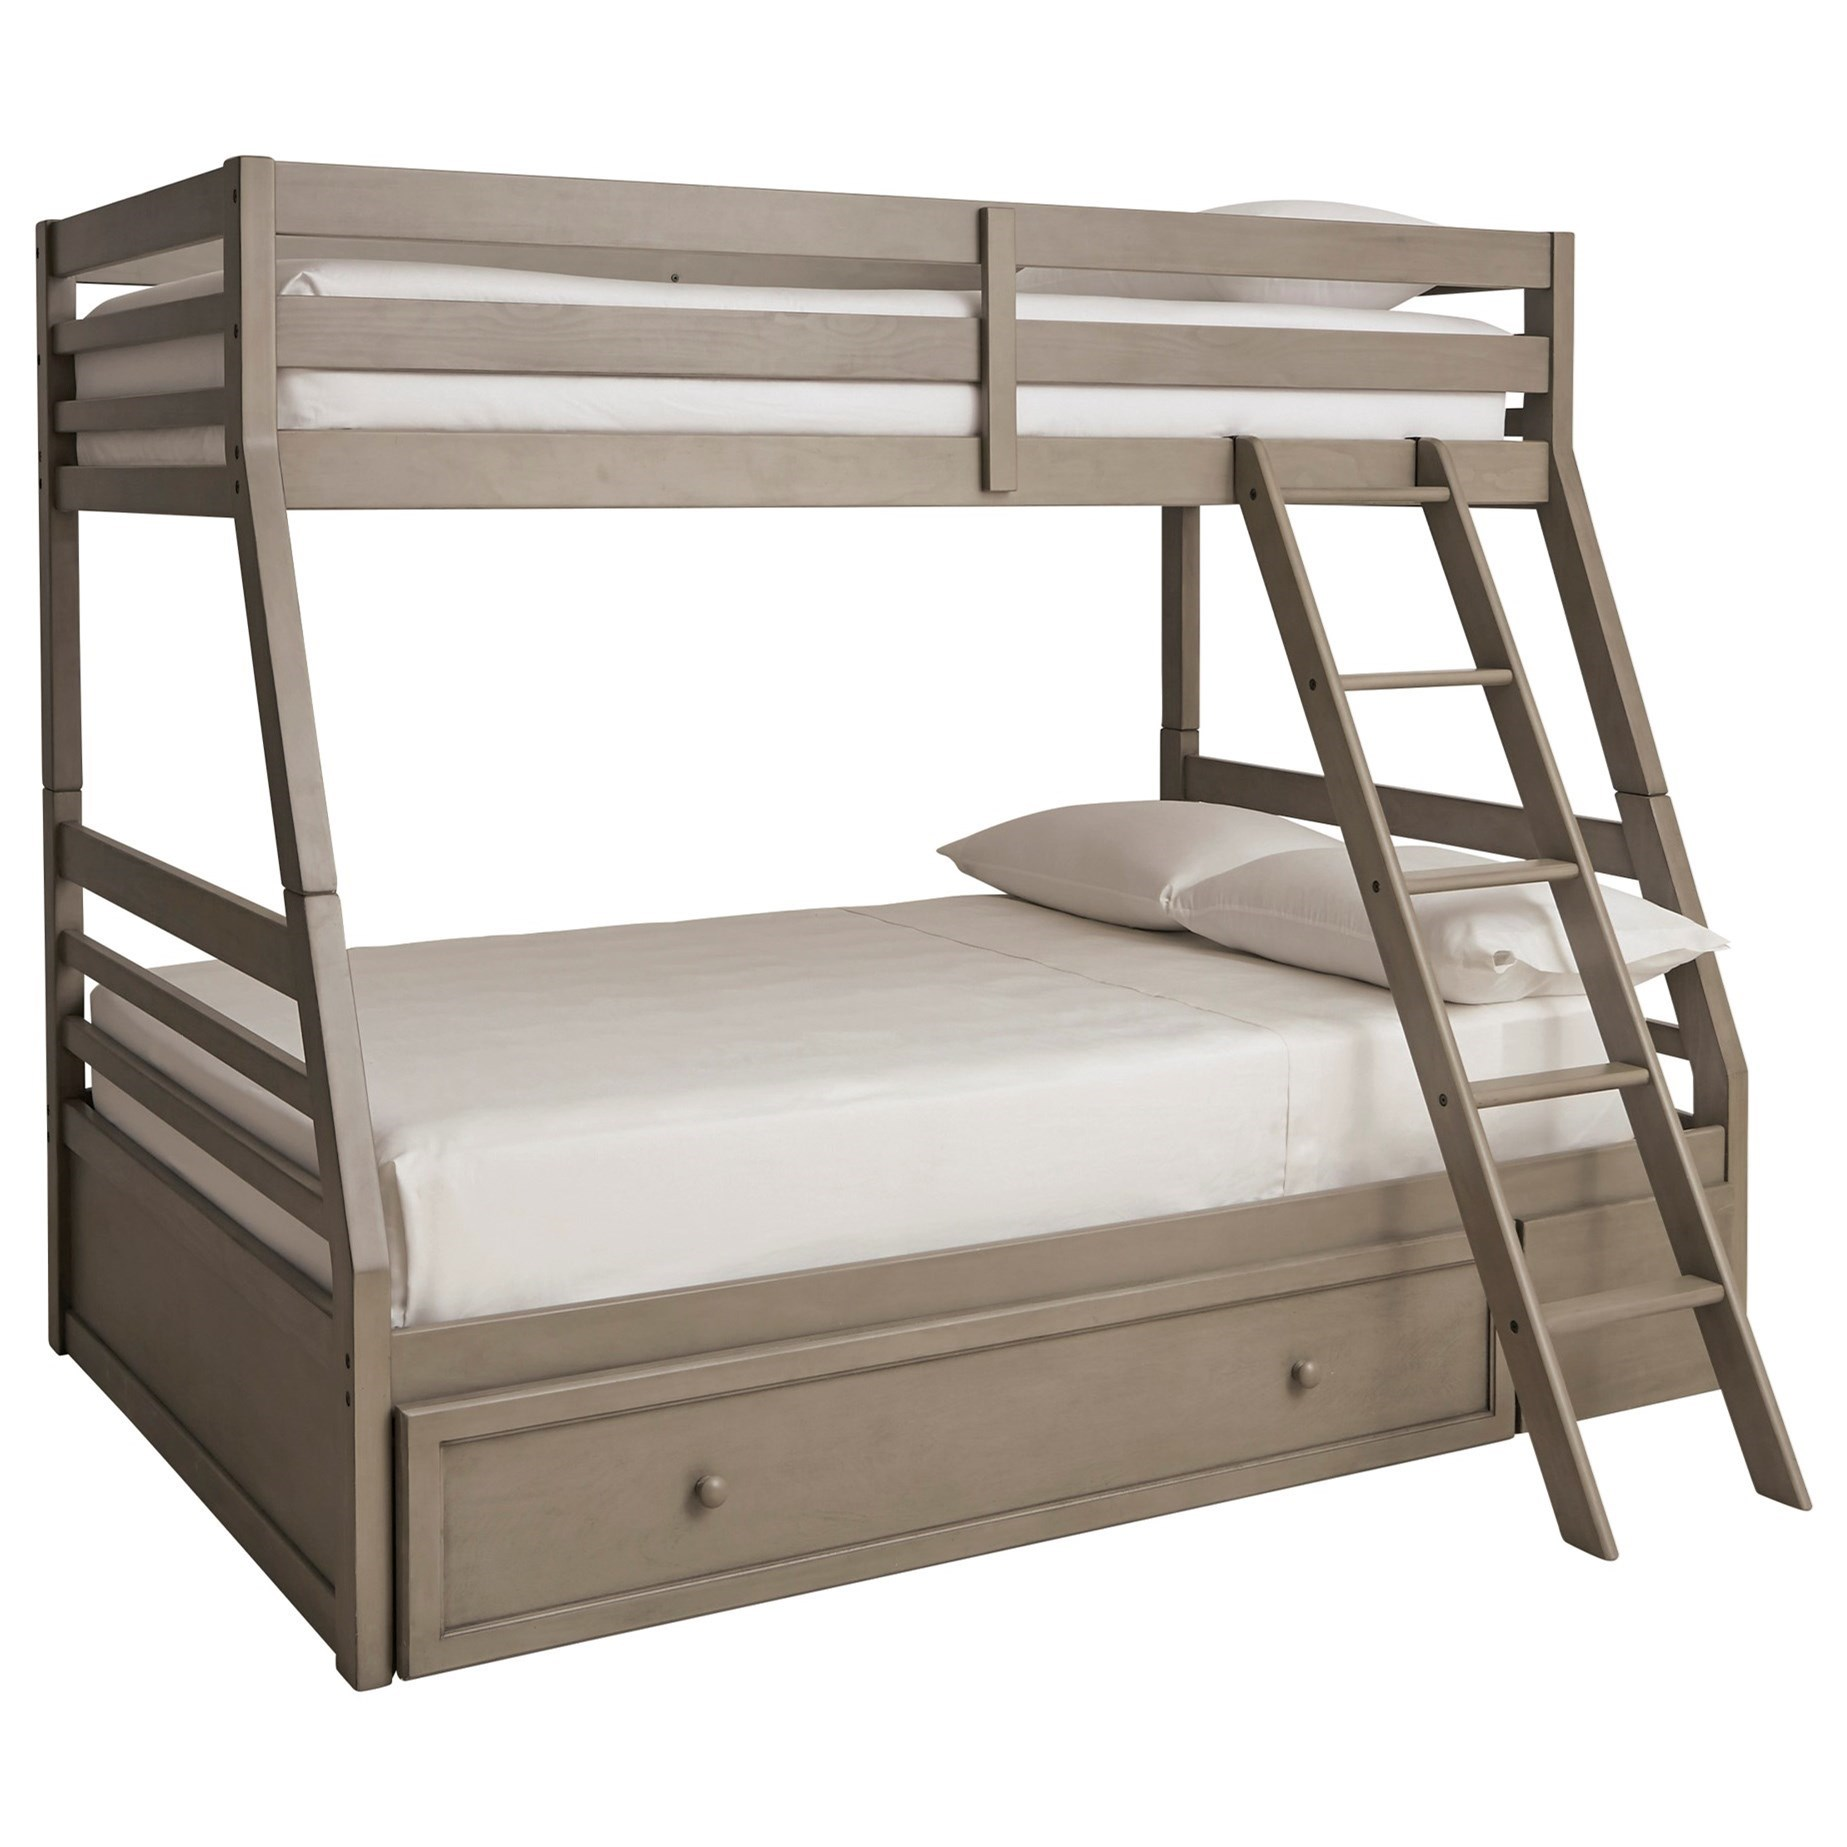 Lettner Twin/Full Bunk Bed w/ Under Bed Storage by Signature Design by Ashley at Godby Home Furnishings